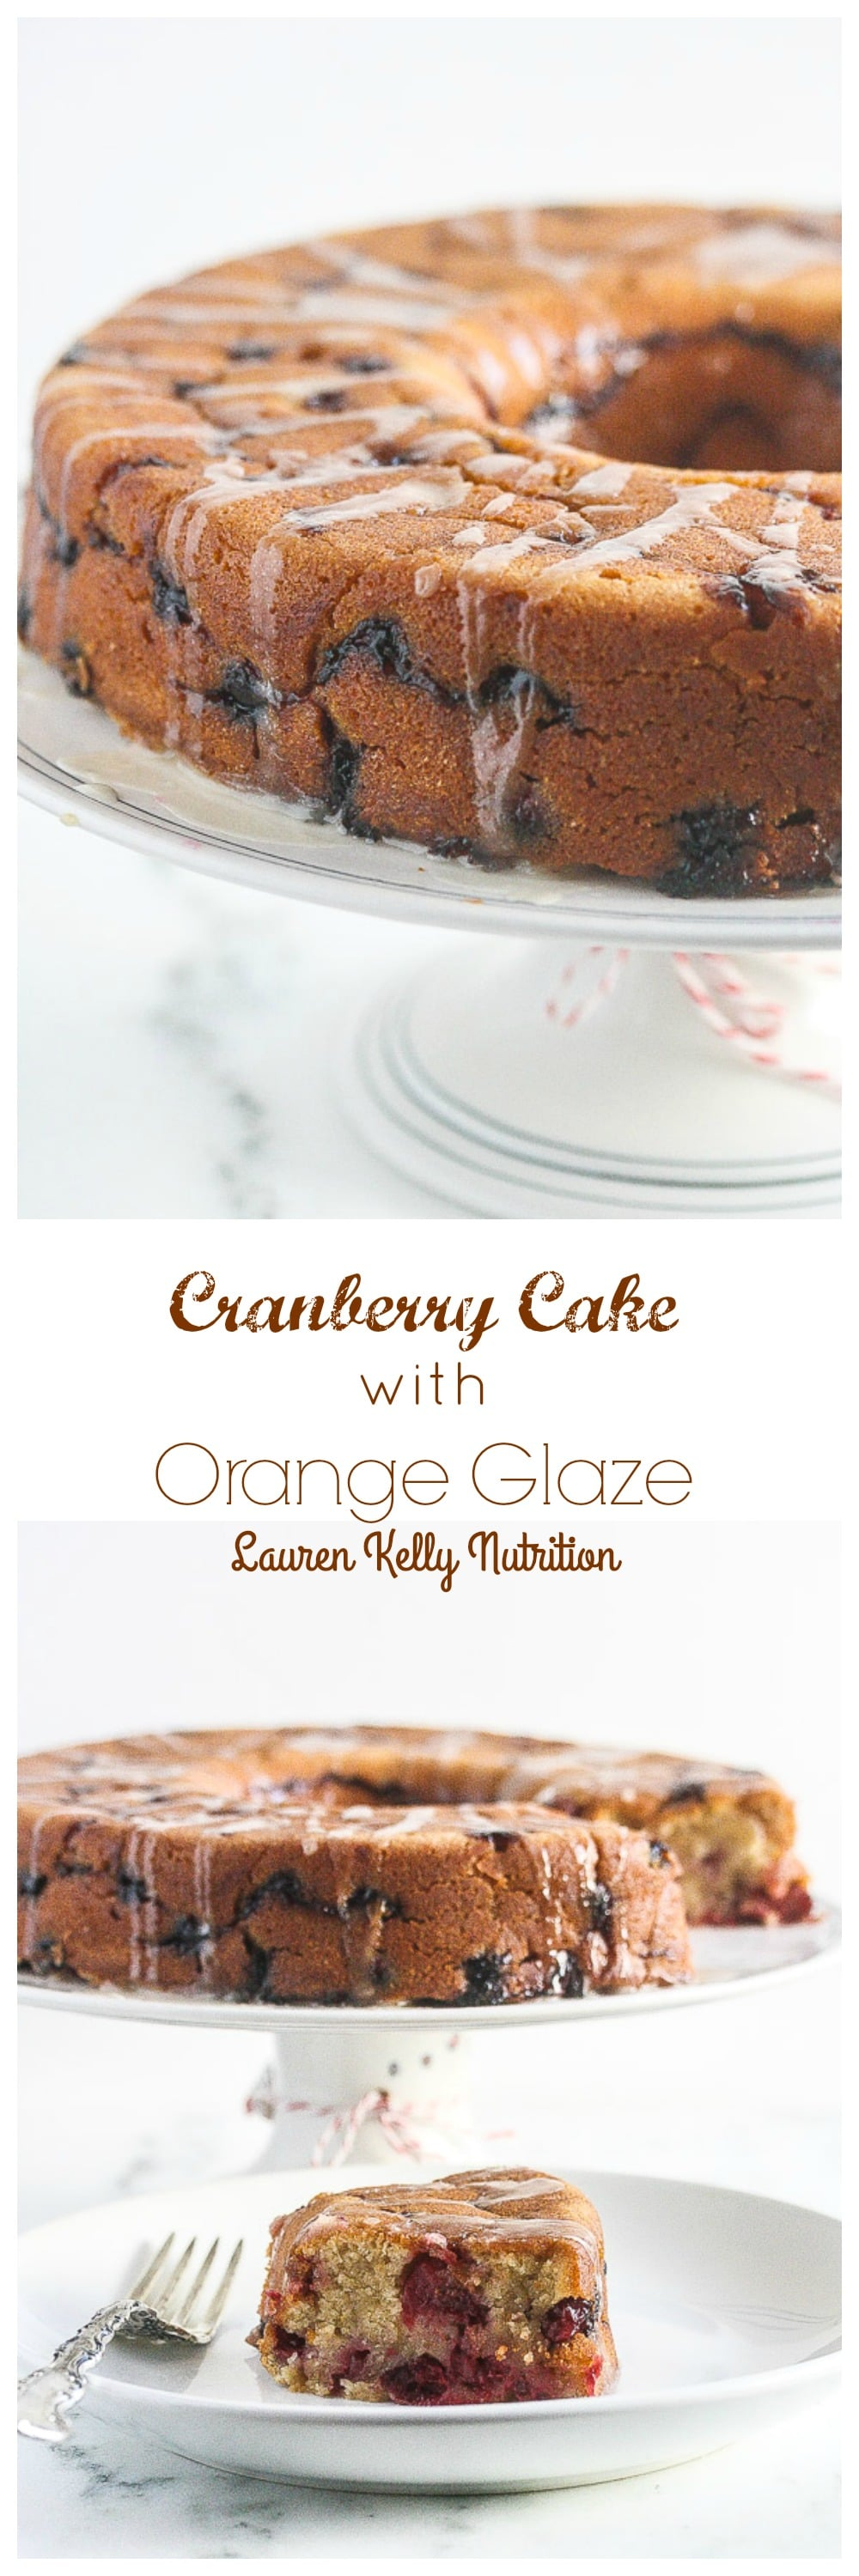 This Cranberry Cake with Orange Glaze is lightened up a bit, but still crazy delicious! From Lauren Kelly Nutrition